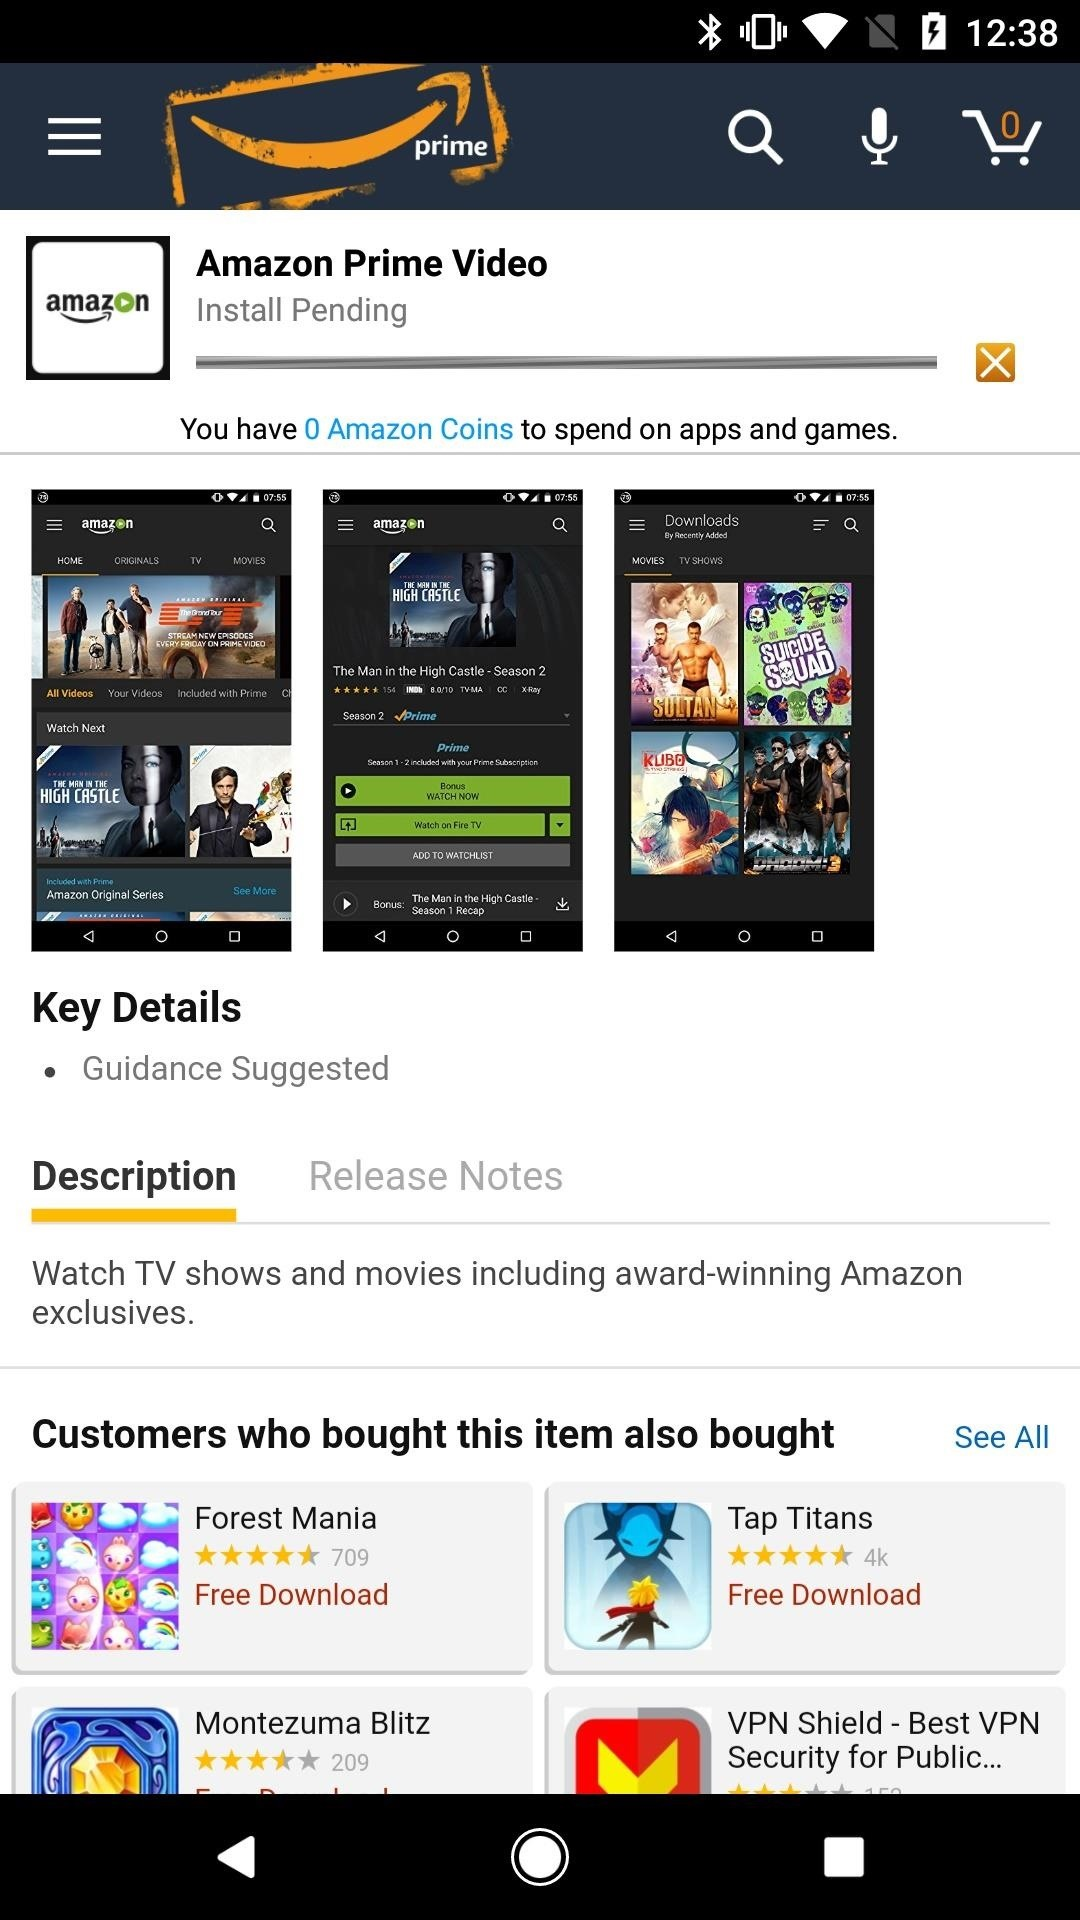 How to Watch Amazon Prime Videos on Your Android Phone